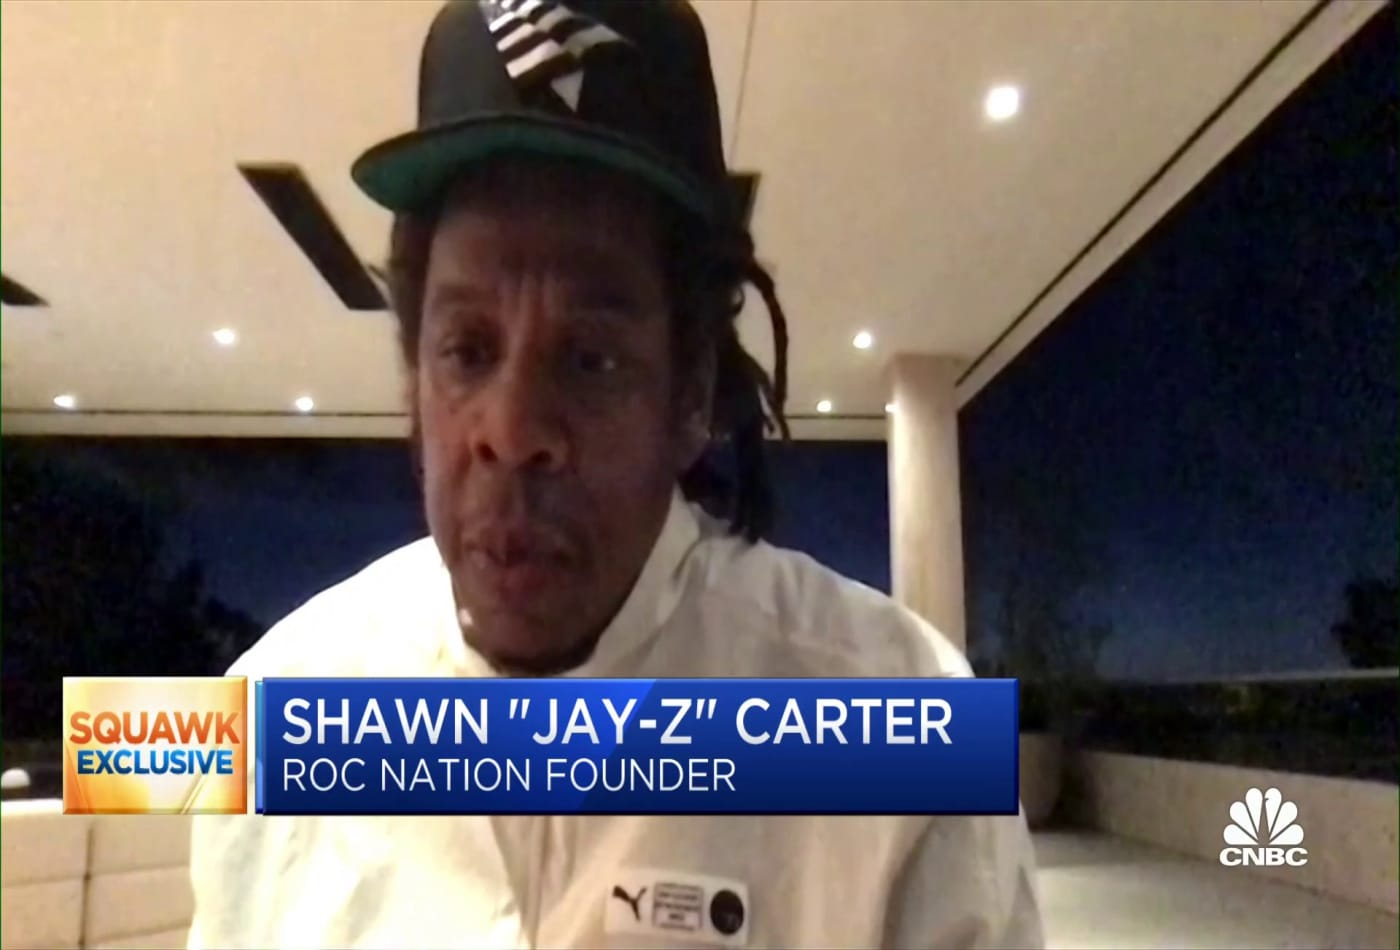 Jay-Z on teaming up with Moet on his luxury champagne brand Armand de Brignac